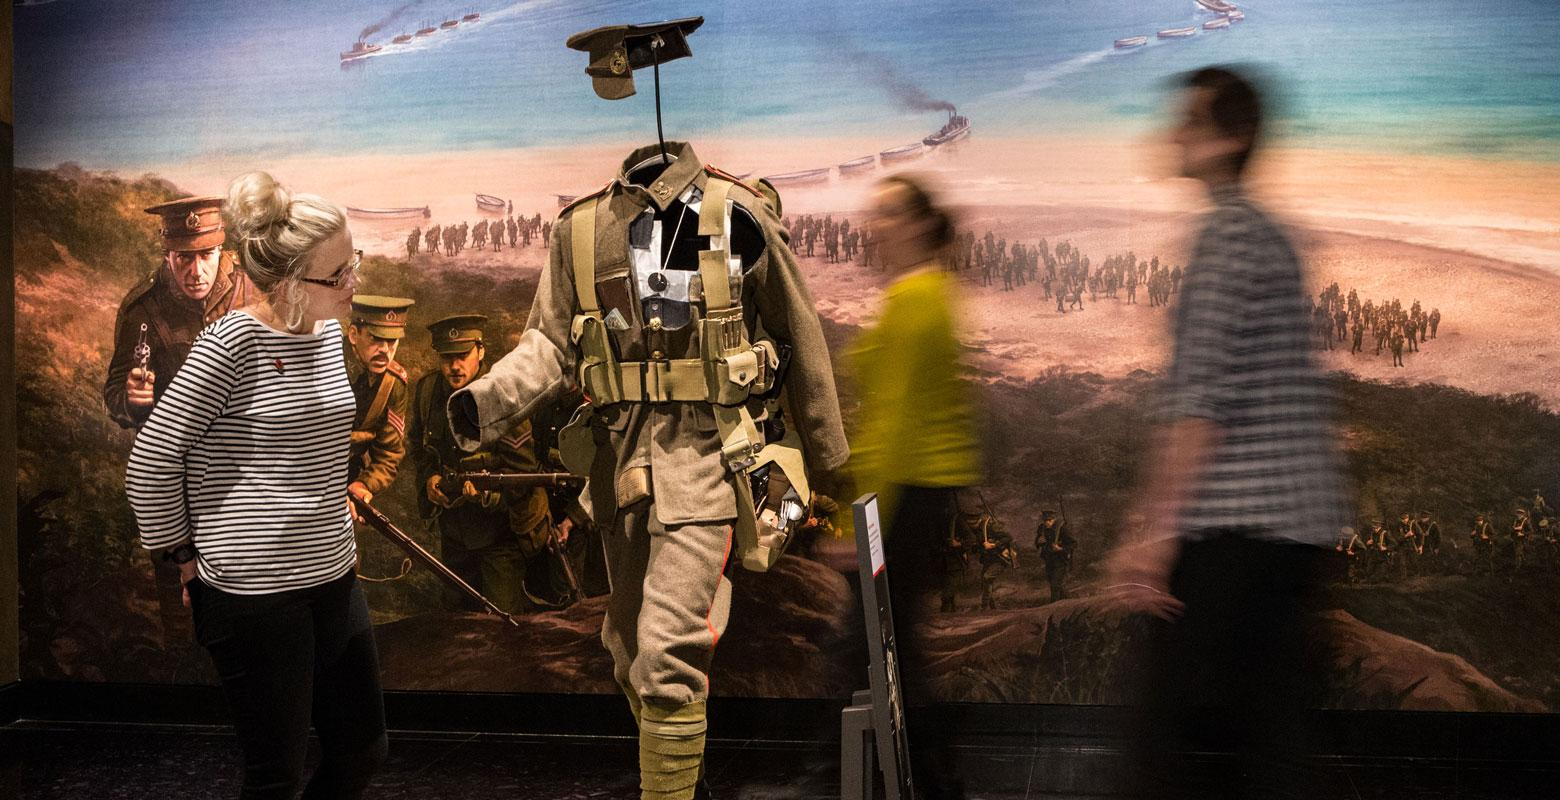 Visitors examine the cut-through model of soldiers' kit